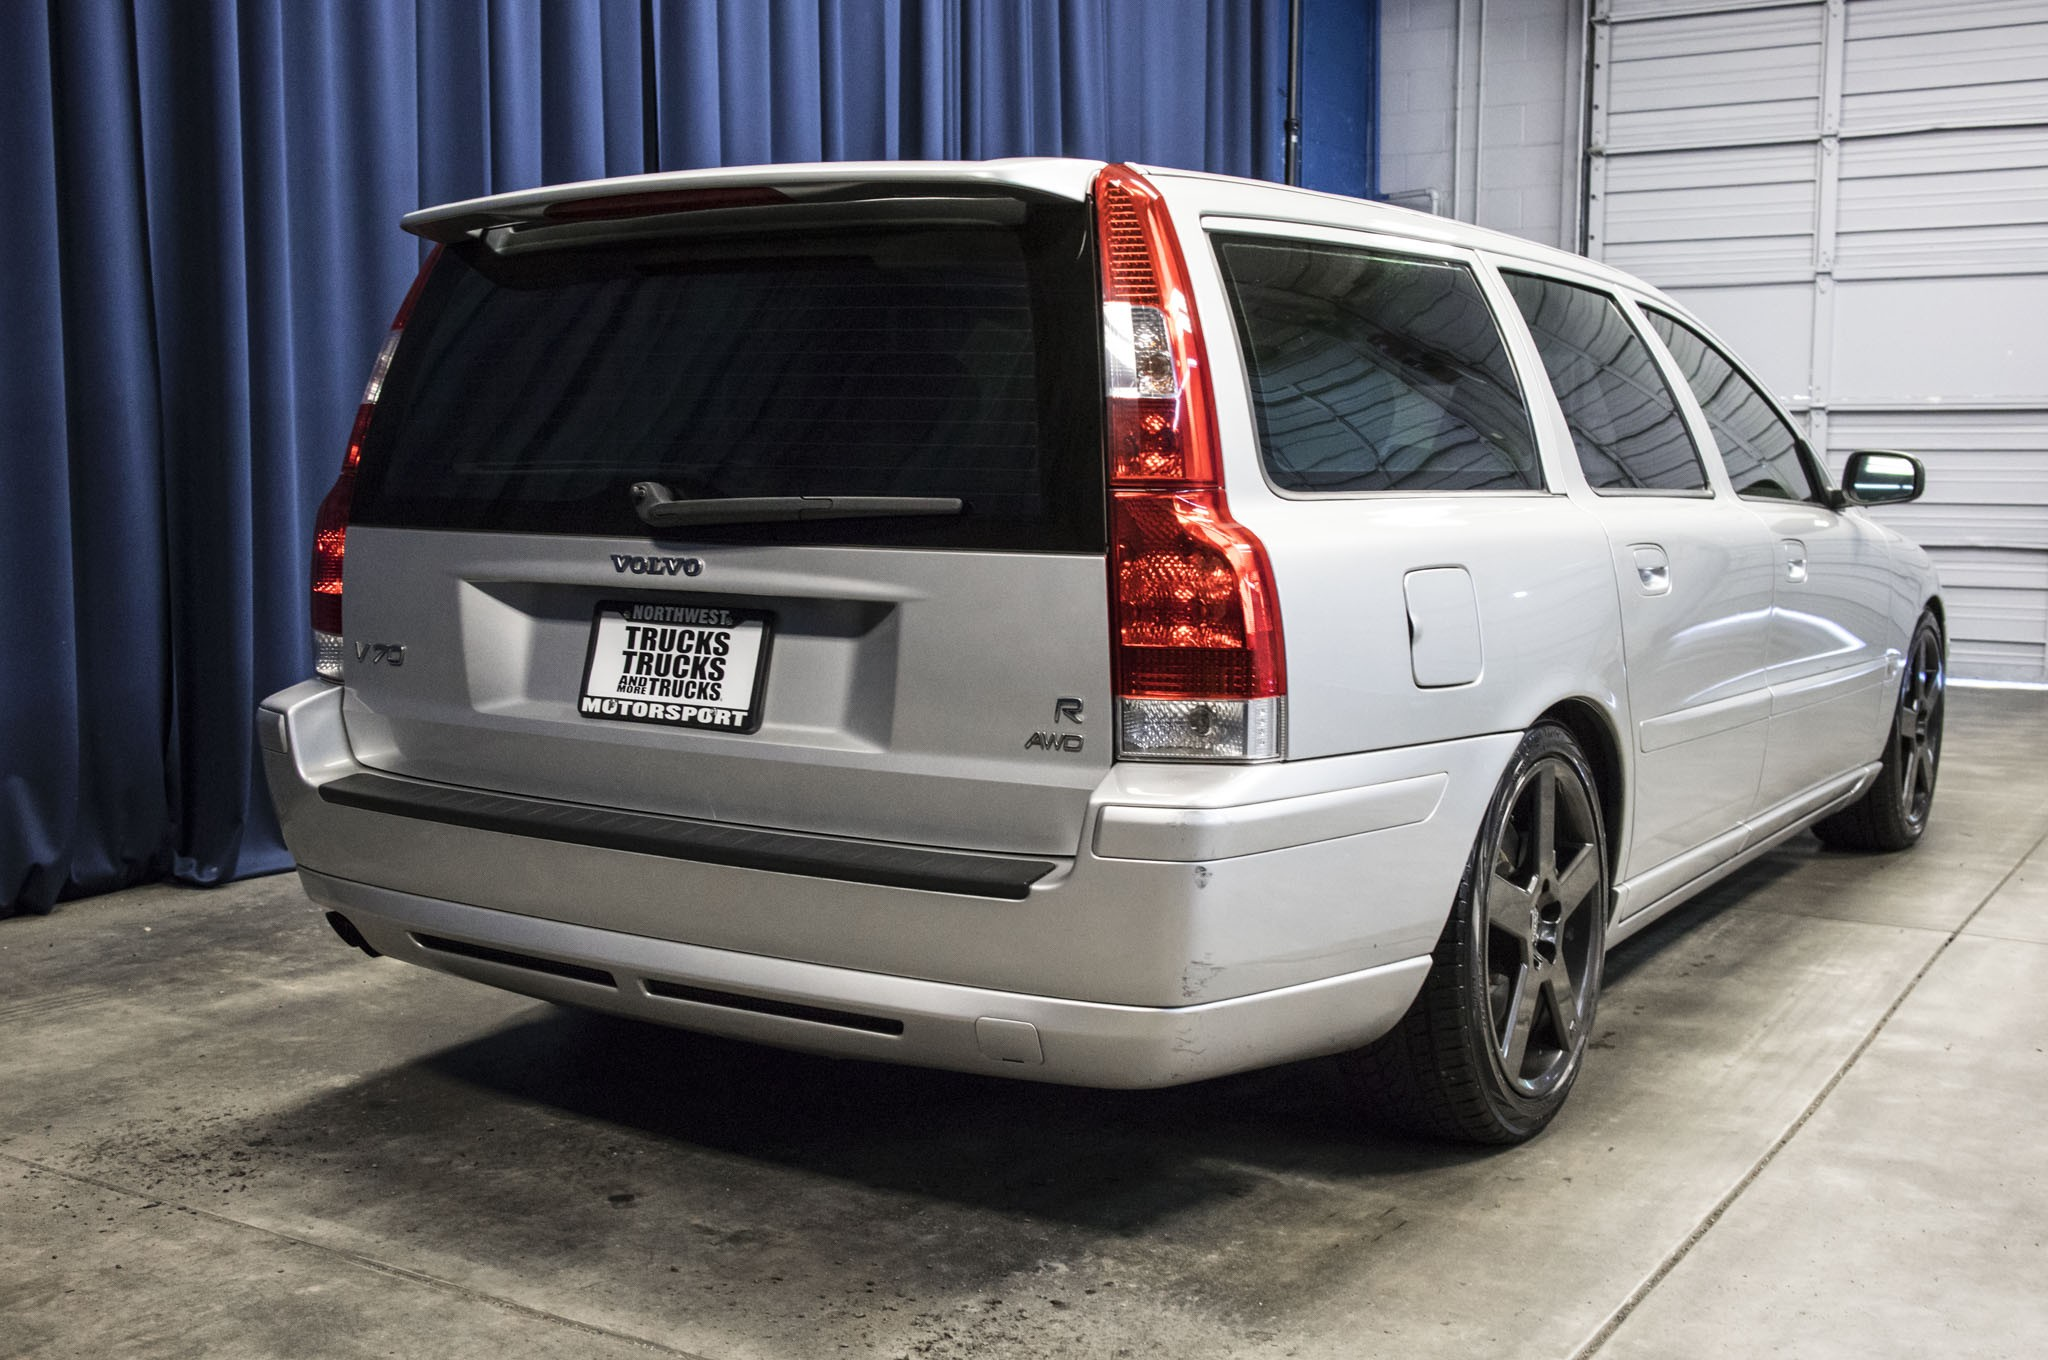 Used 2005 Volvo V70 R AWD Wagon For Sale - 39908B